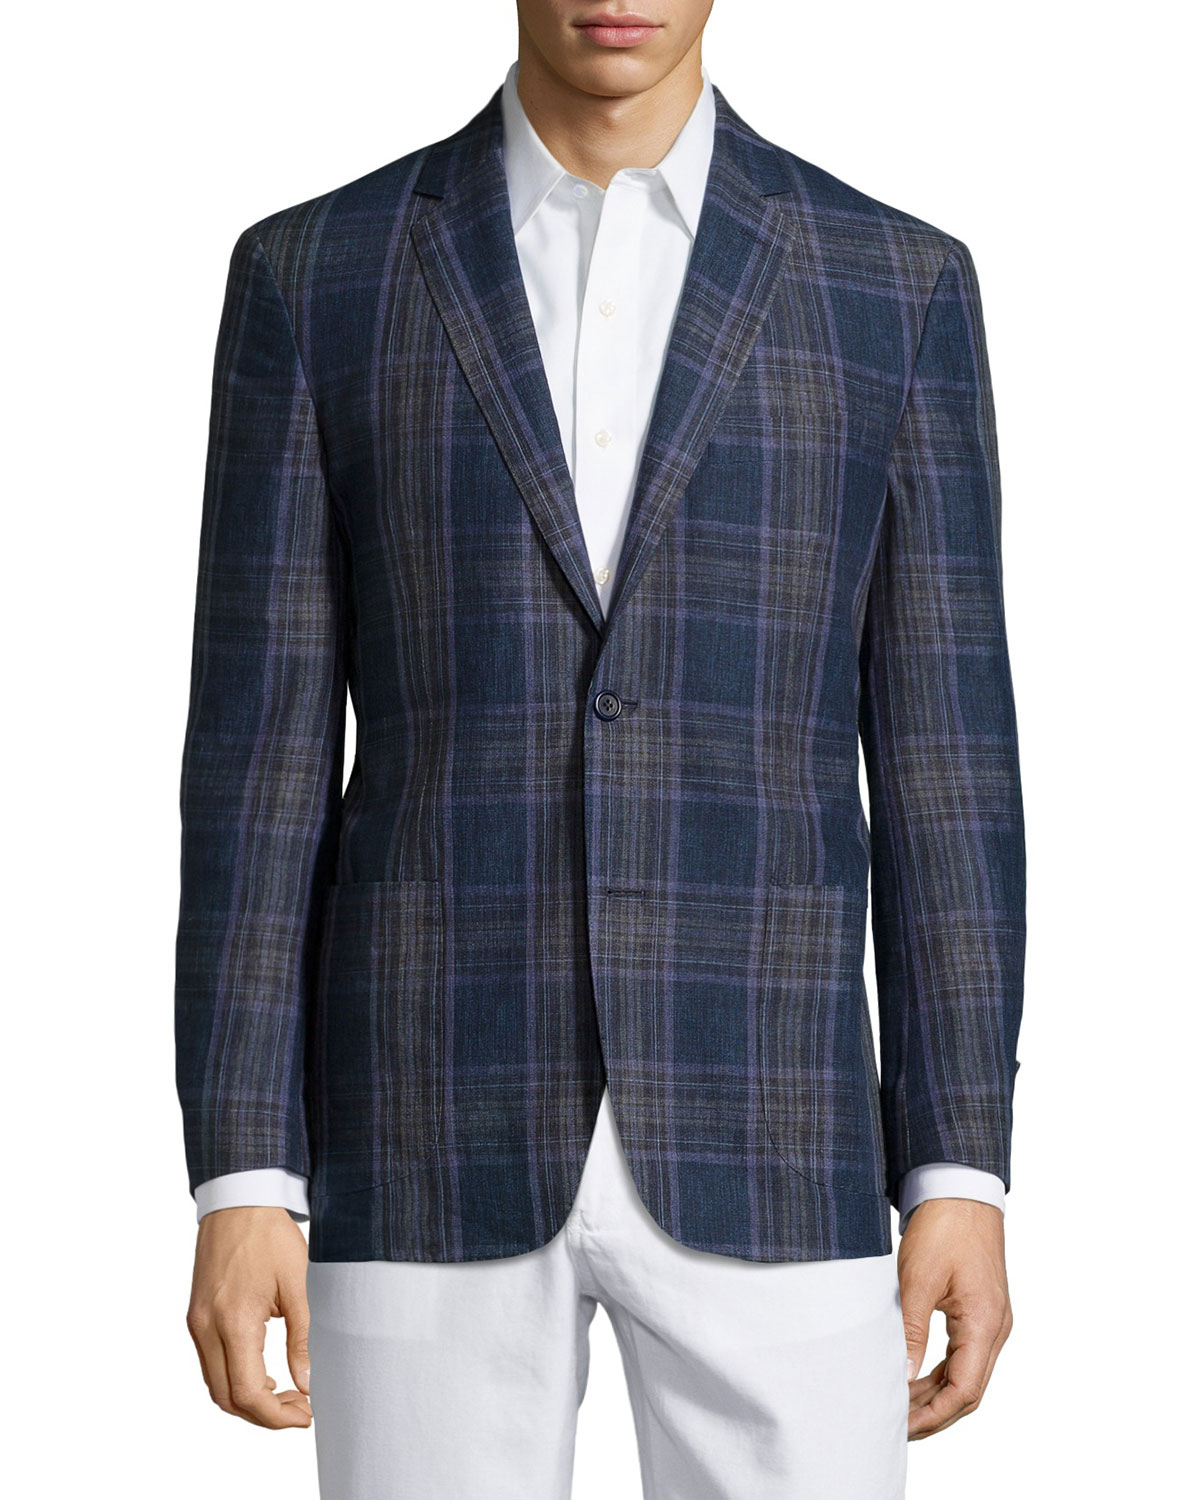 Ike behar Plaid Sport Coat in Blue for Men | Lyst